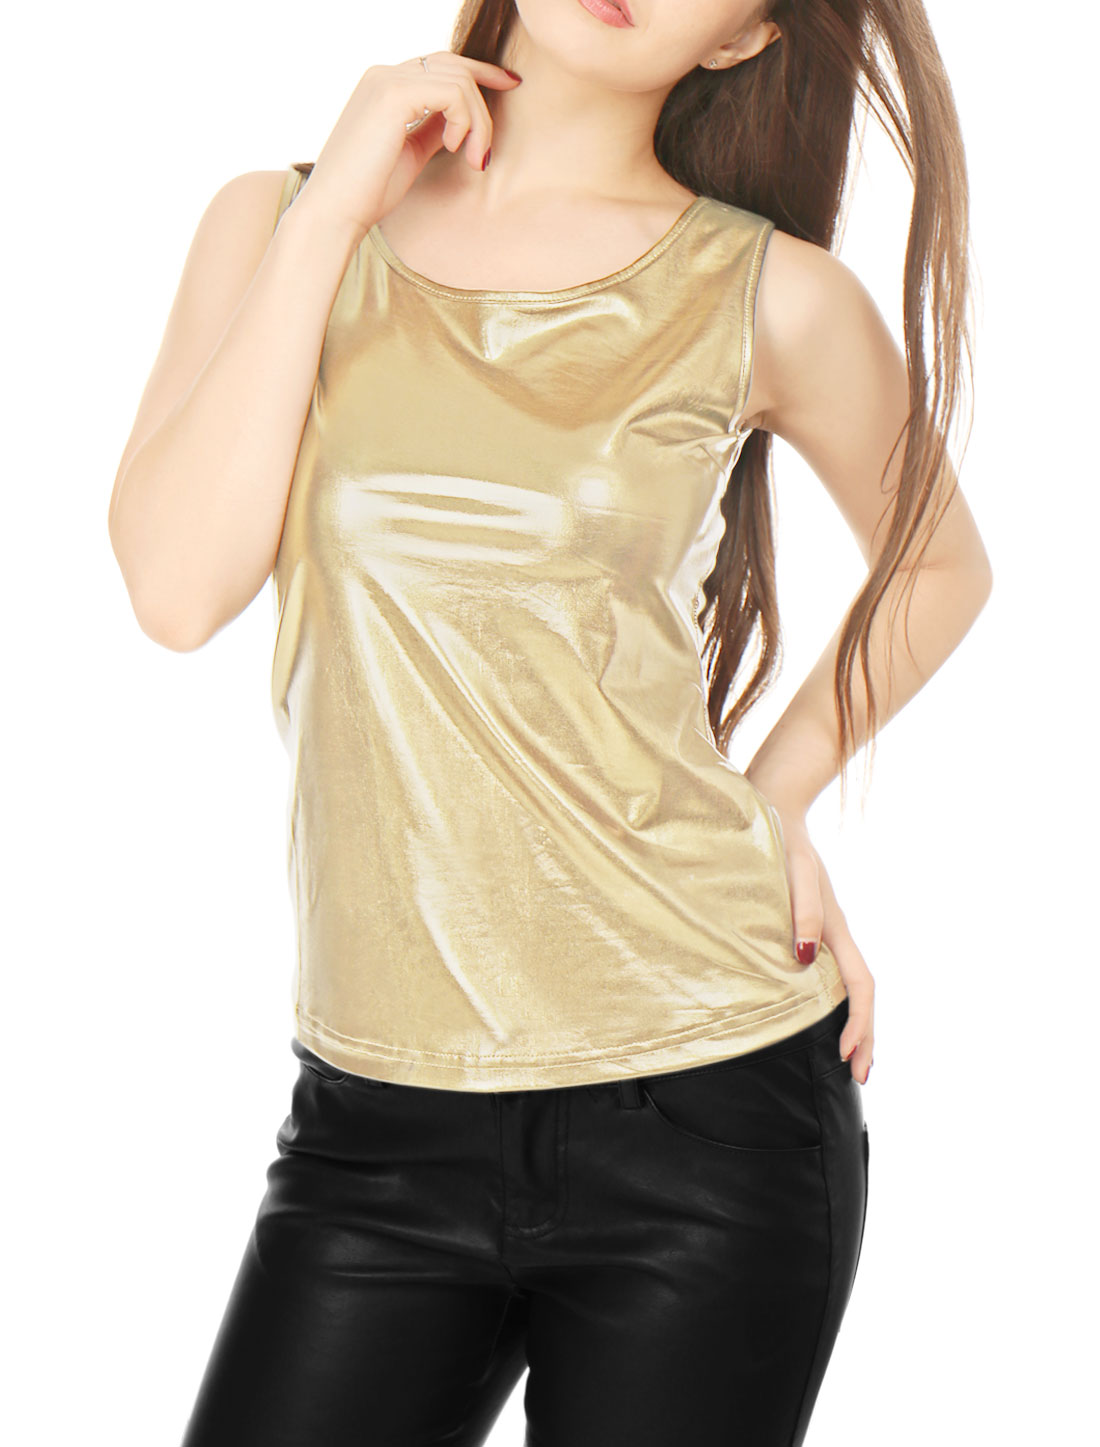 Women Sleeveless U Neck Fashion Metallic Tank Top Gold XL